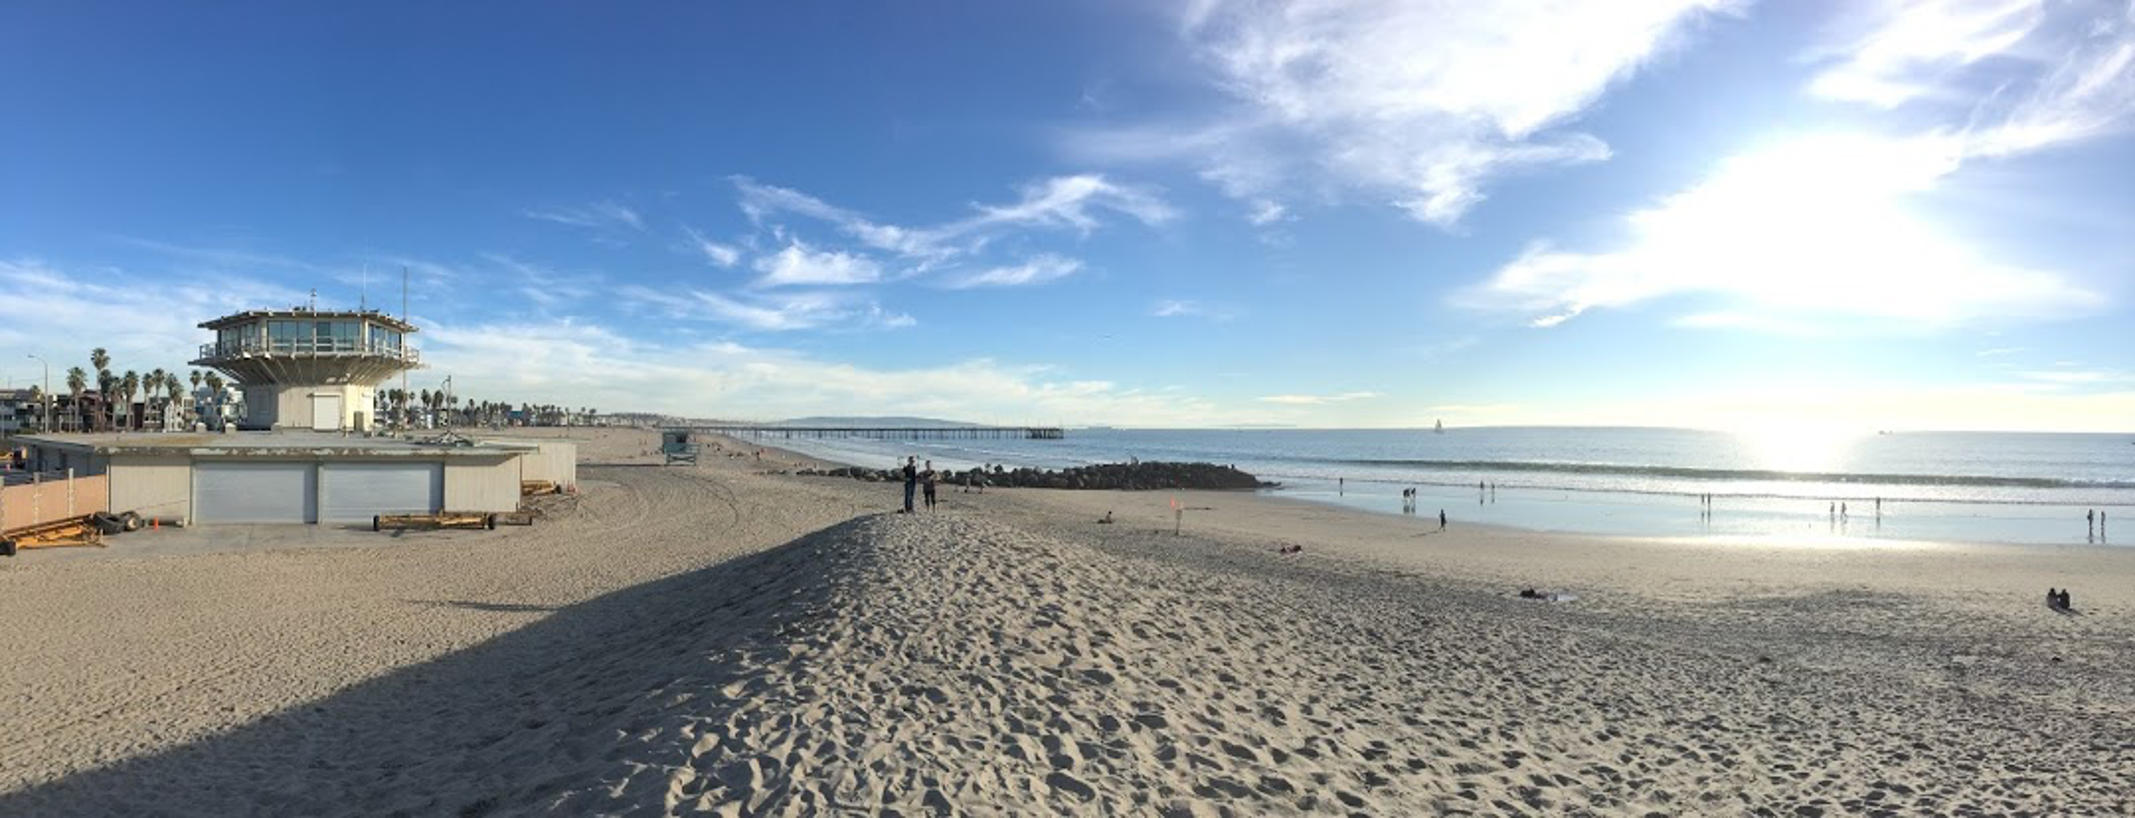 Panorama of a sand berm on Venice beach and lifeguard tower